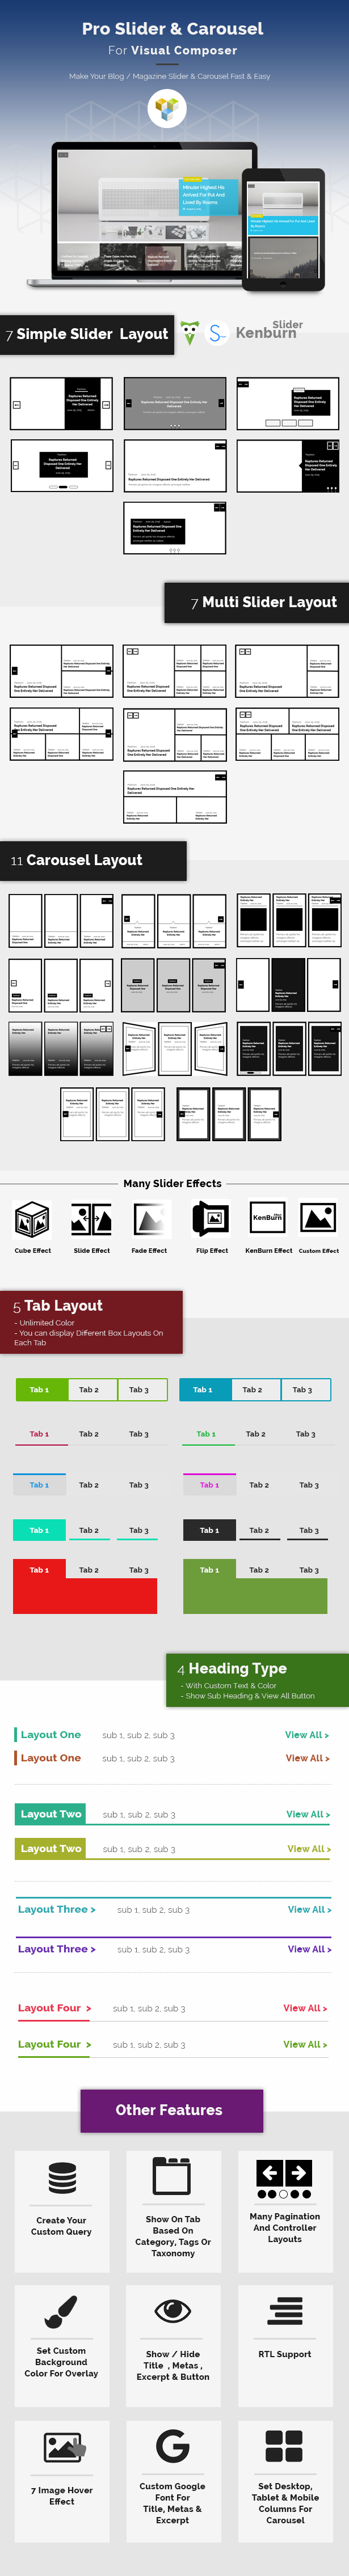 Pro Slider & Carousel Layout for Visual Composer : Amazingly Display Post & Custom Post - 1